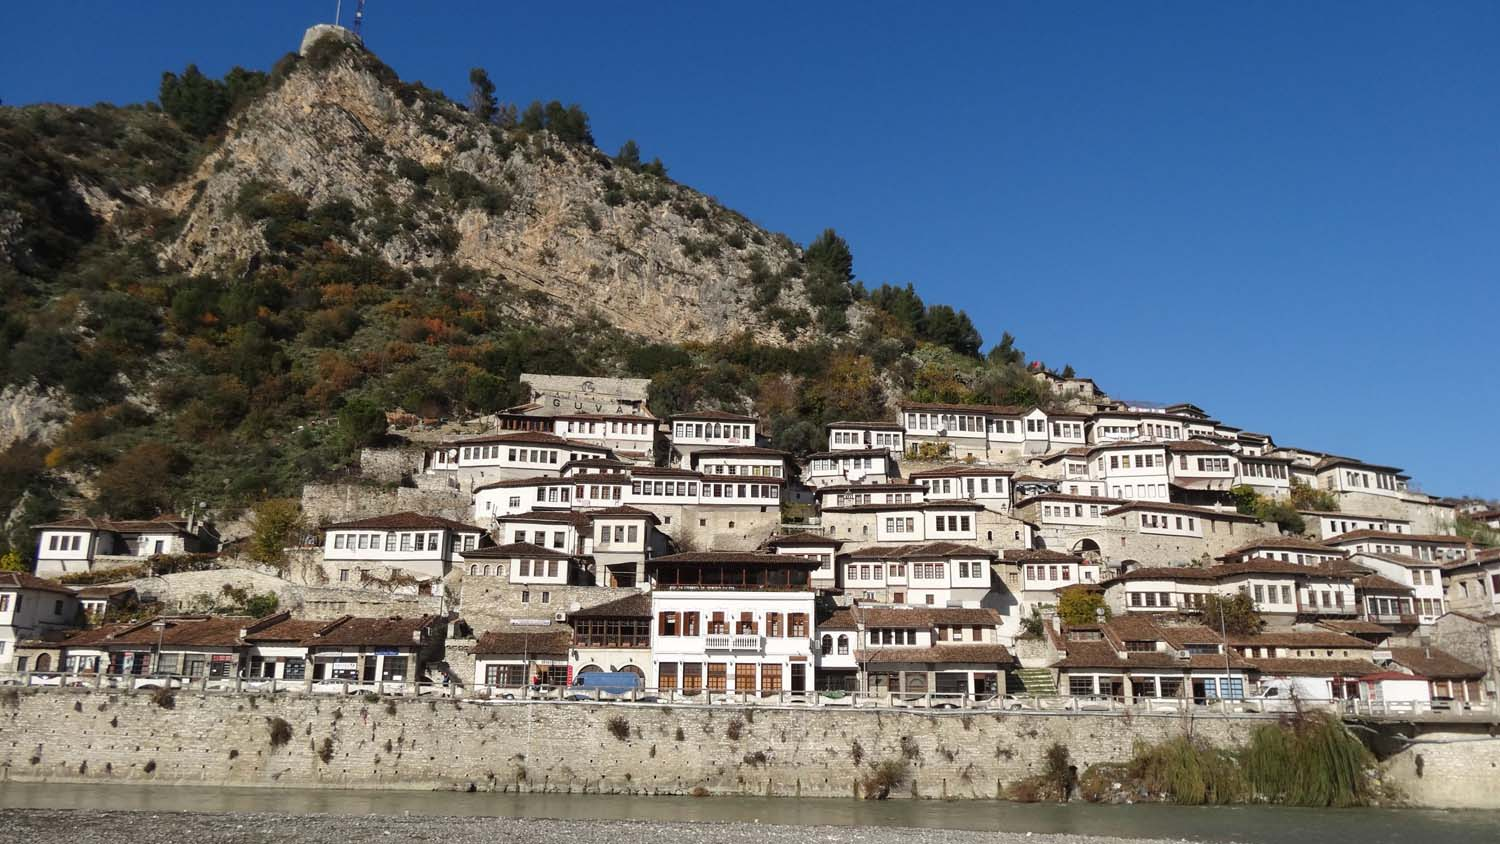 Berat - town of a 1000 windows